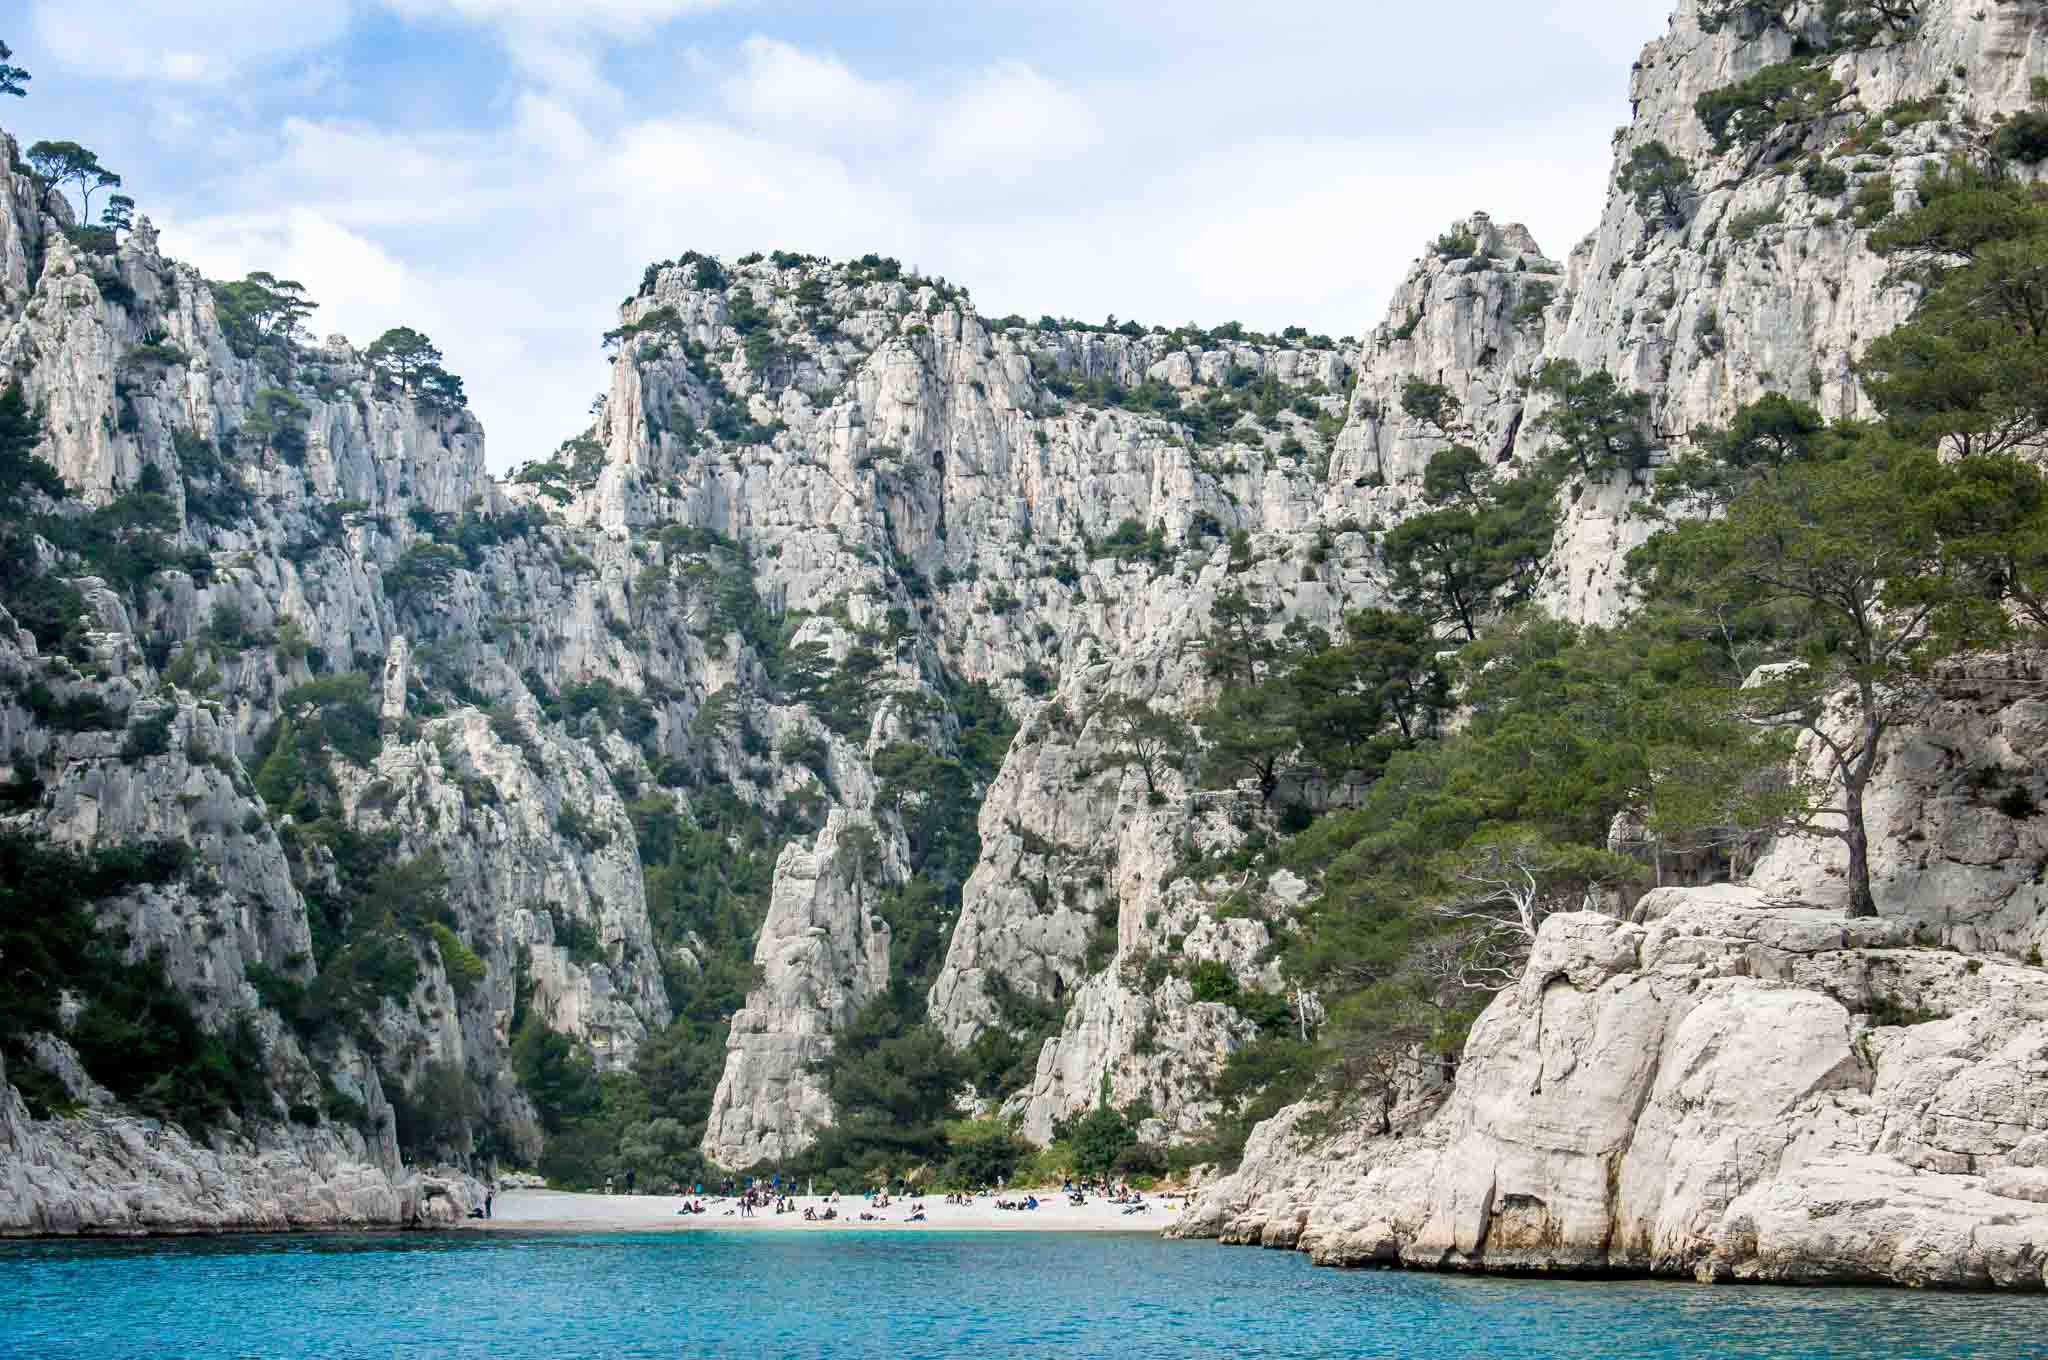 Beach in between the rocky calanques of Cassis